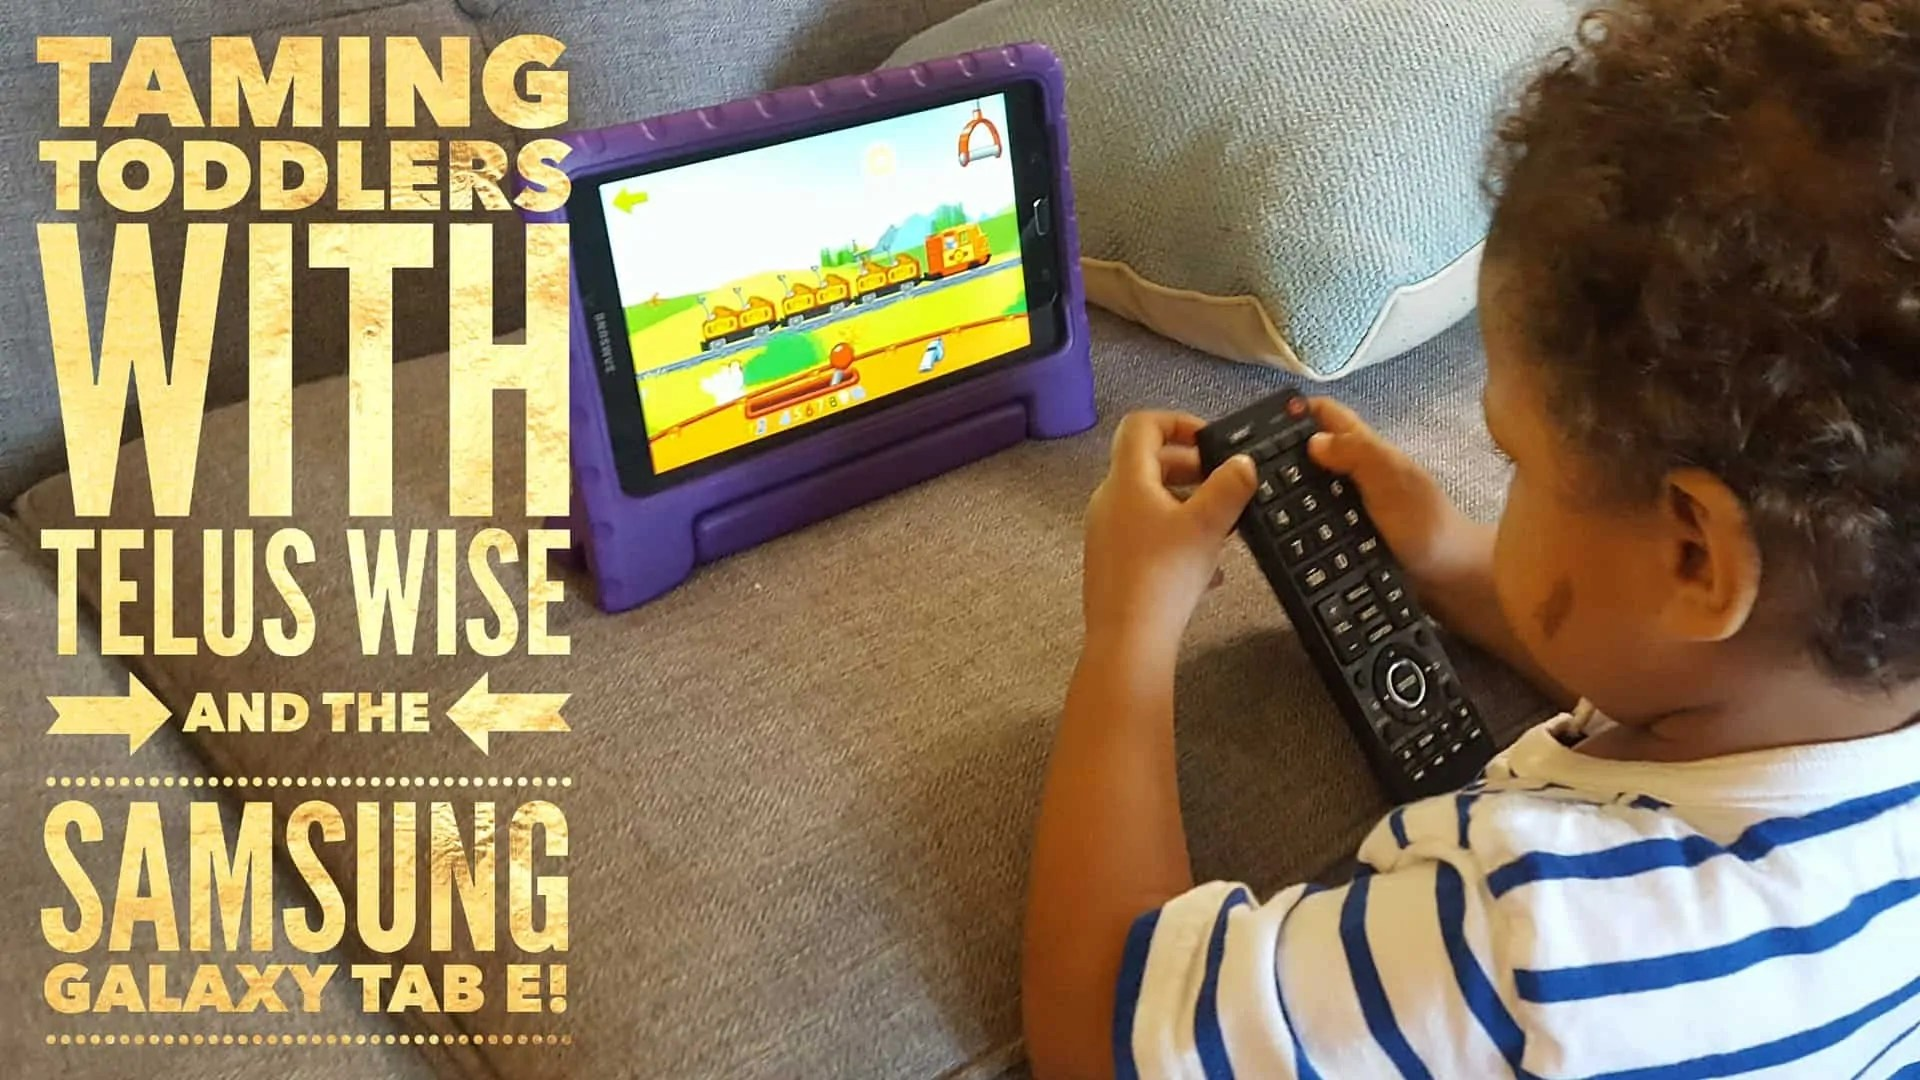 Taming Toddlers with TELUS WISE and the Samsung Galaxy Tab E! (Featured Image)